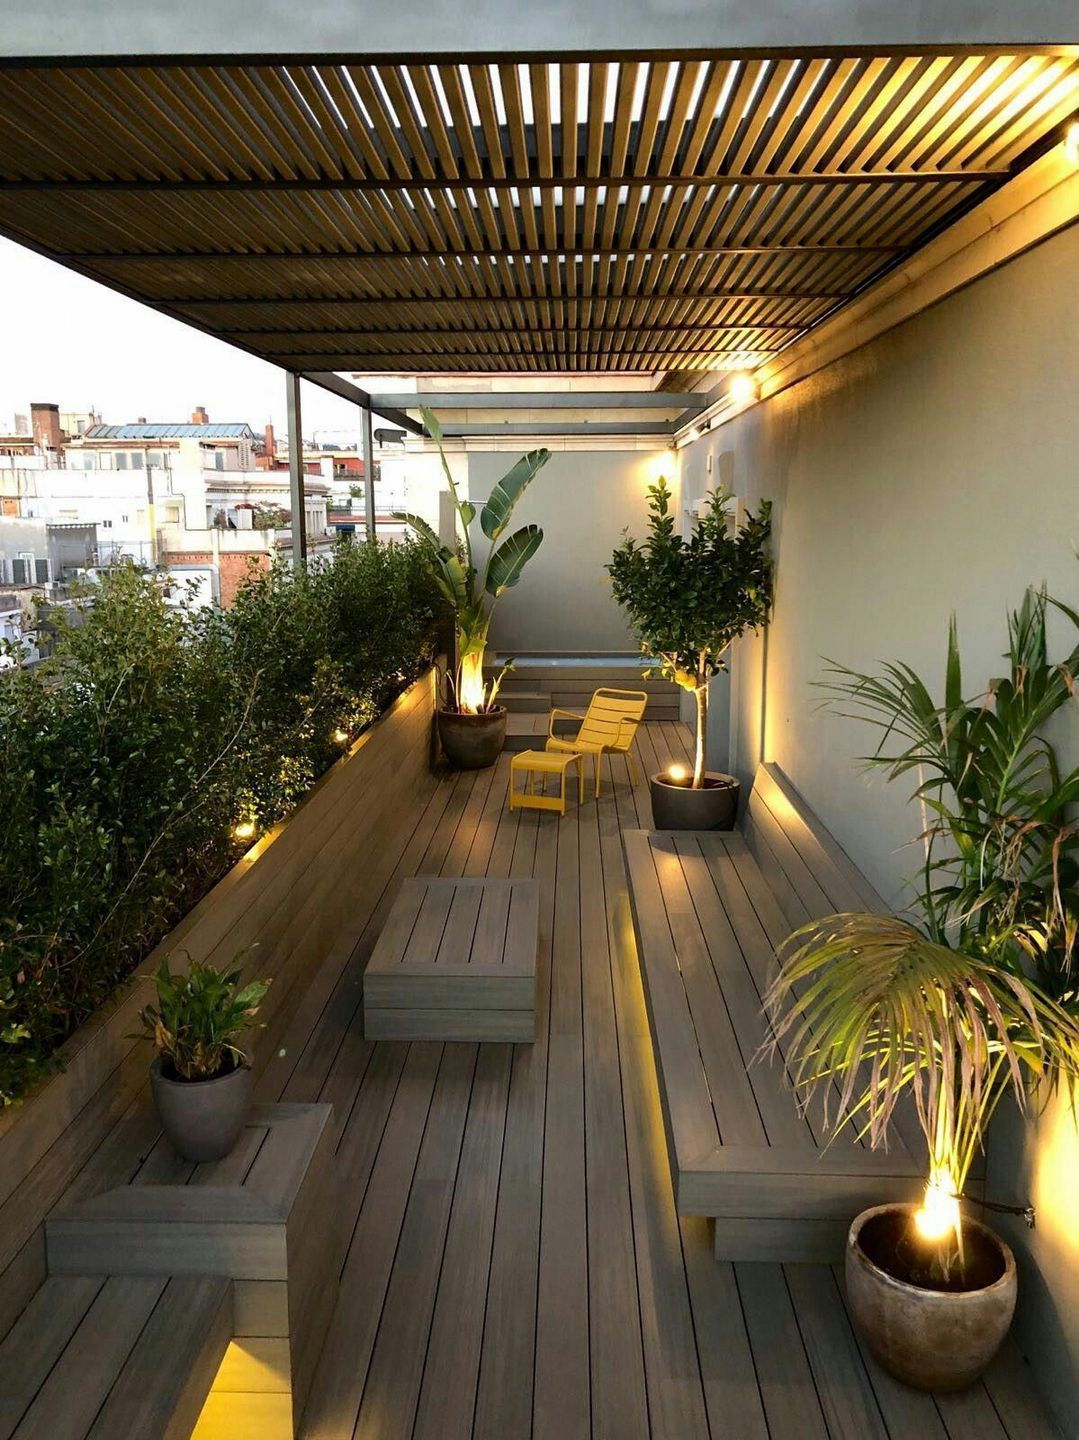 Balkon Lounge 35 Cool Balcony Decoration Ideas For Your Apartment Or Home